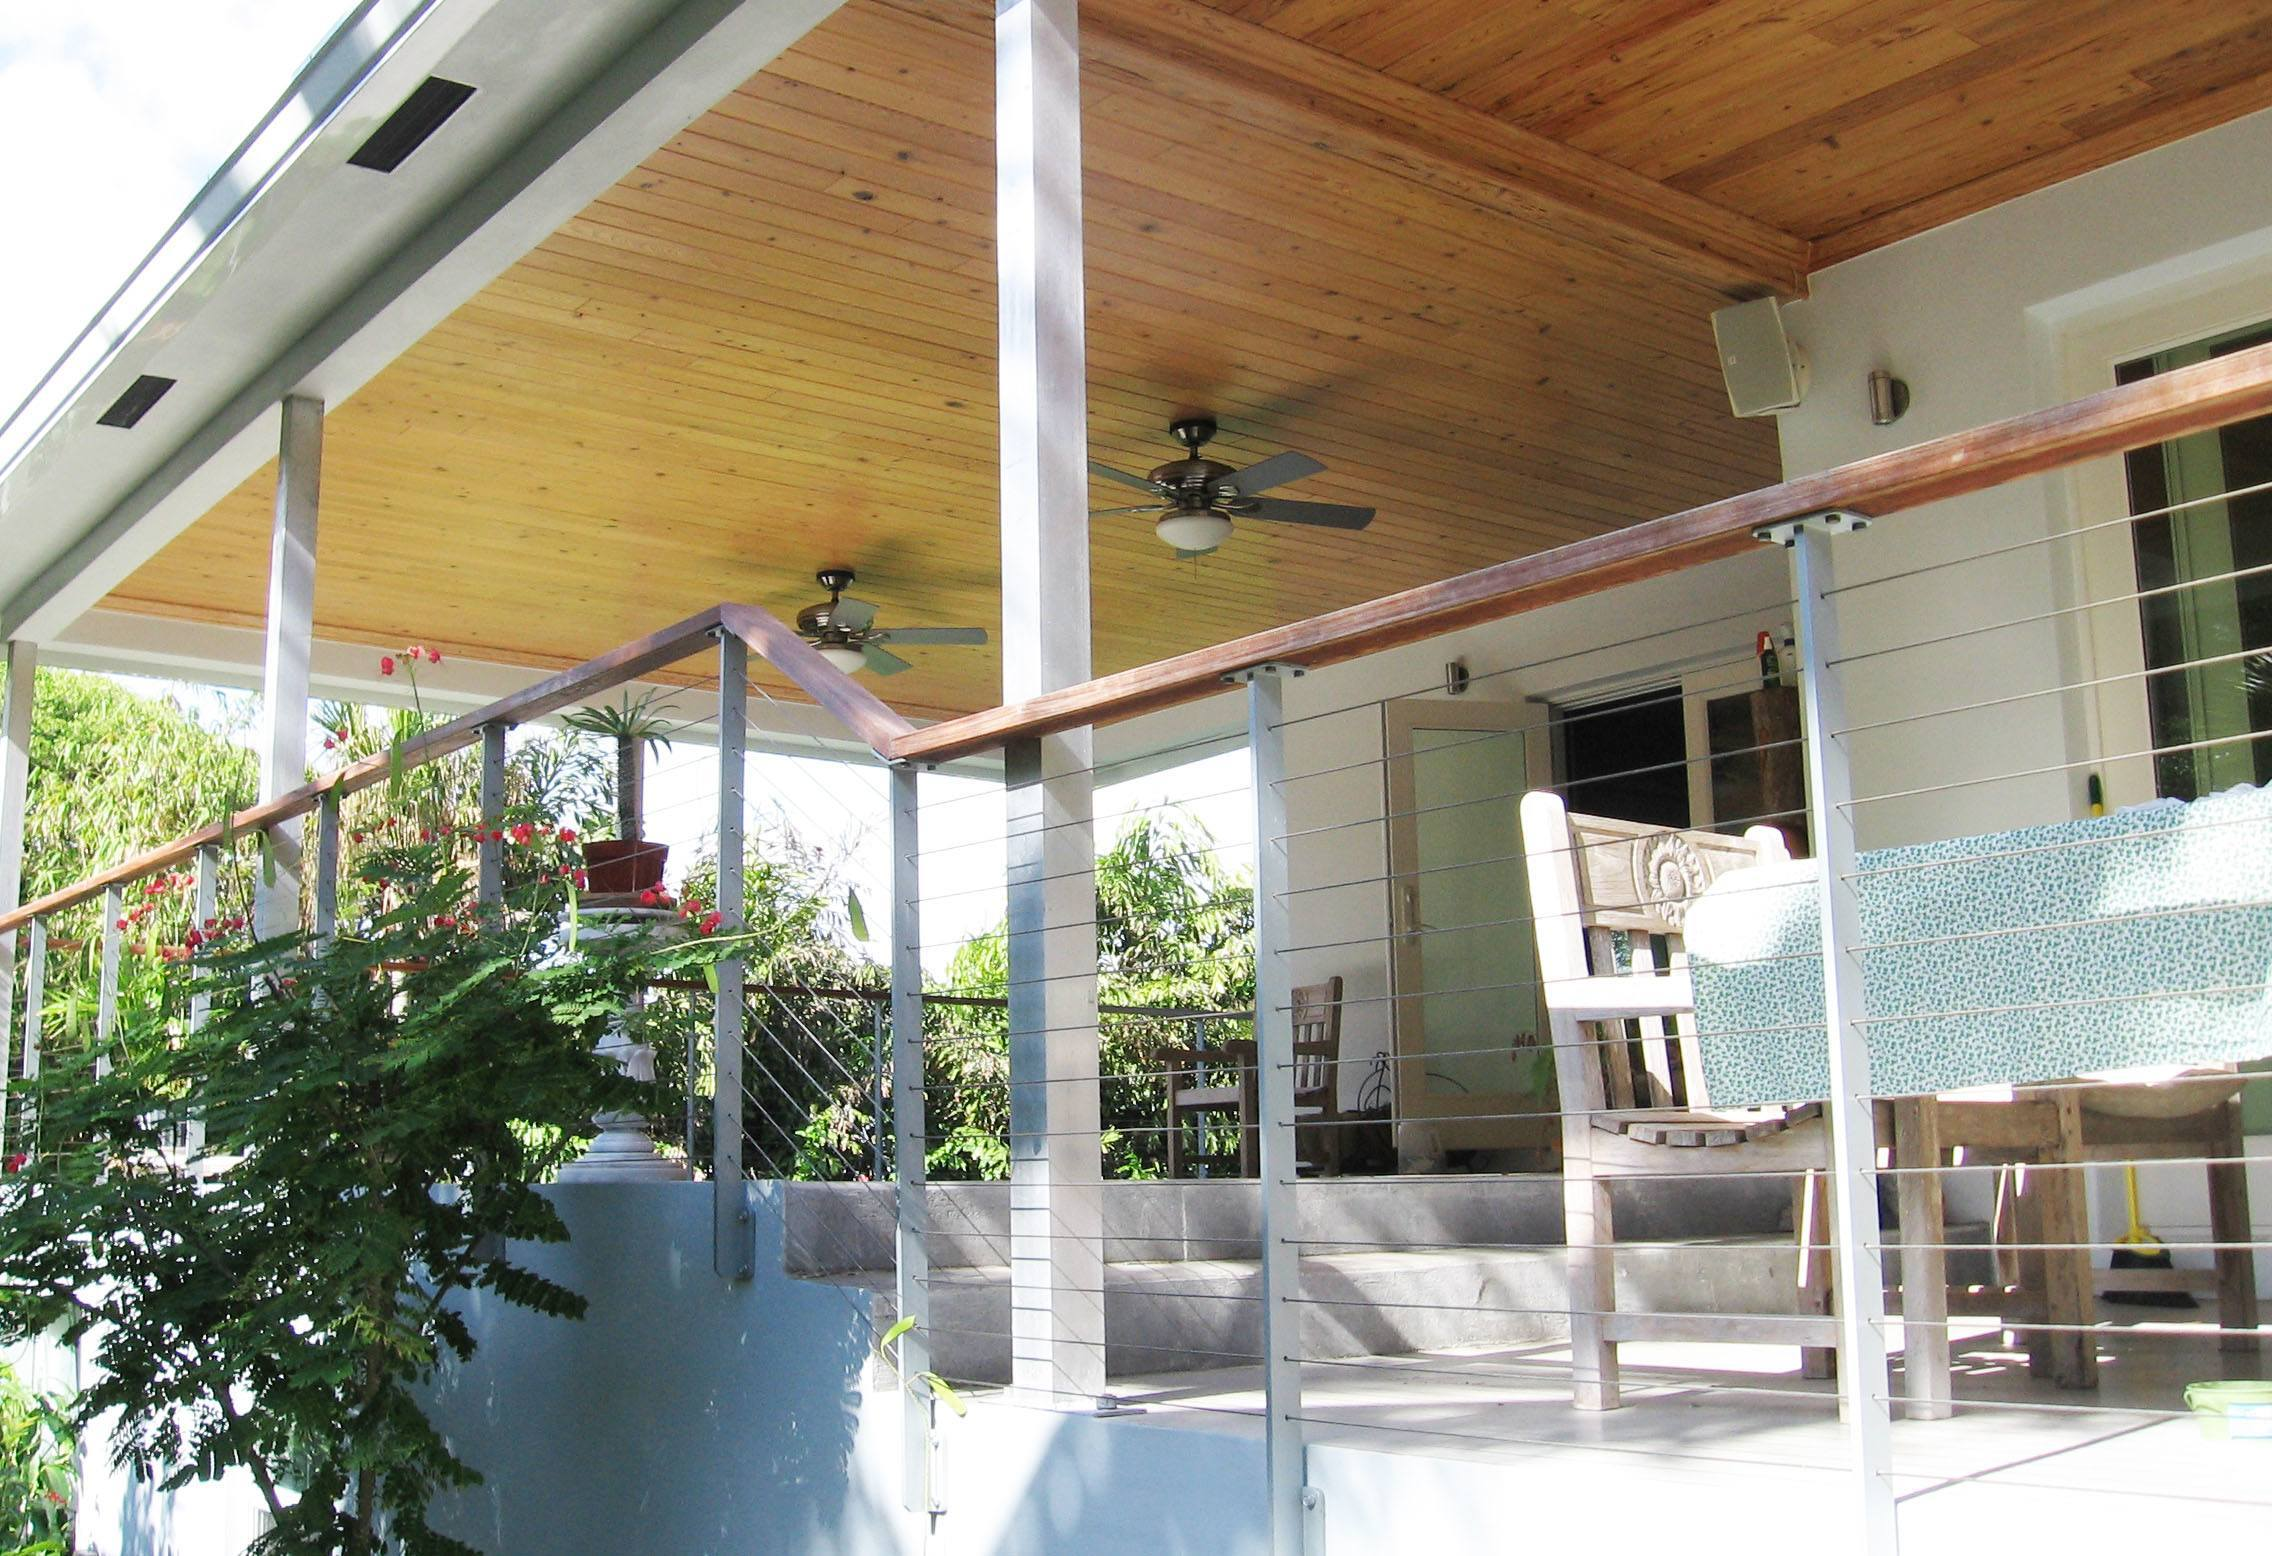 Outdoor deck with ceiling fans